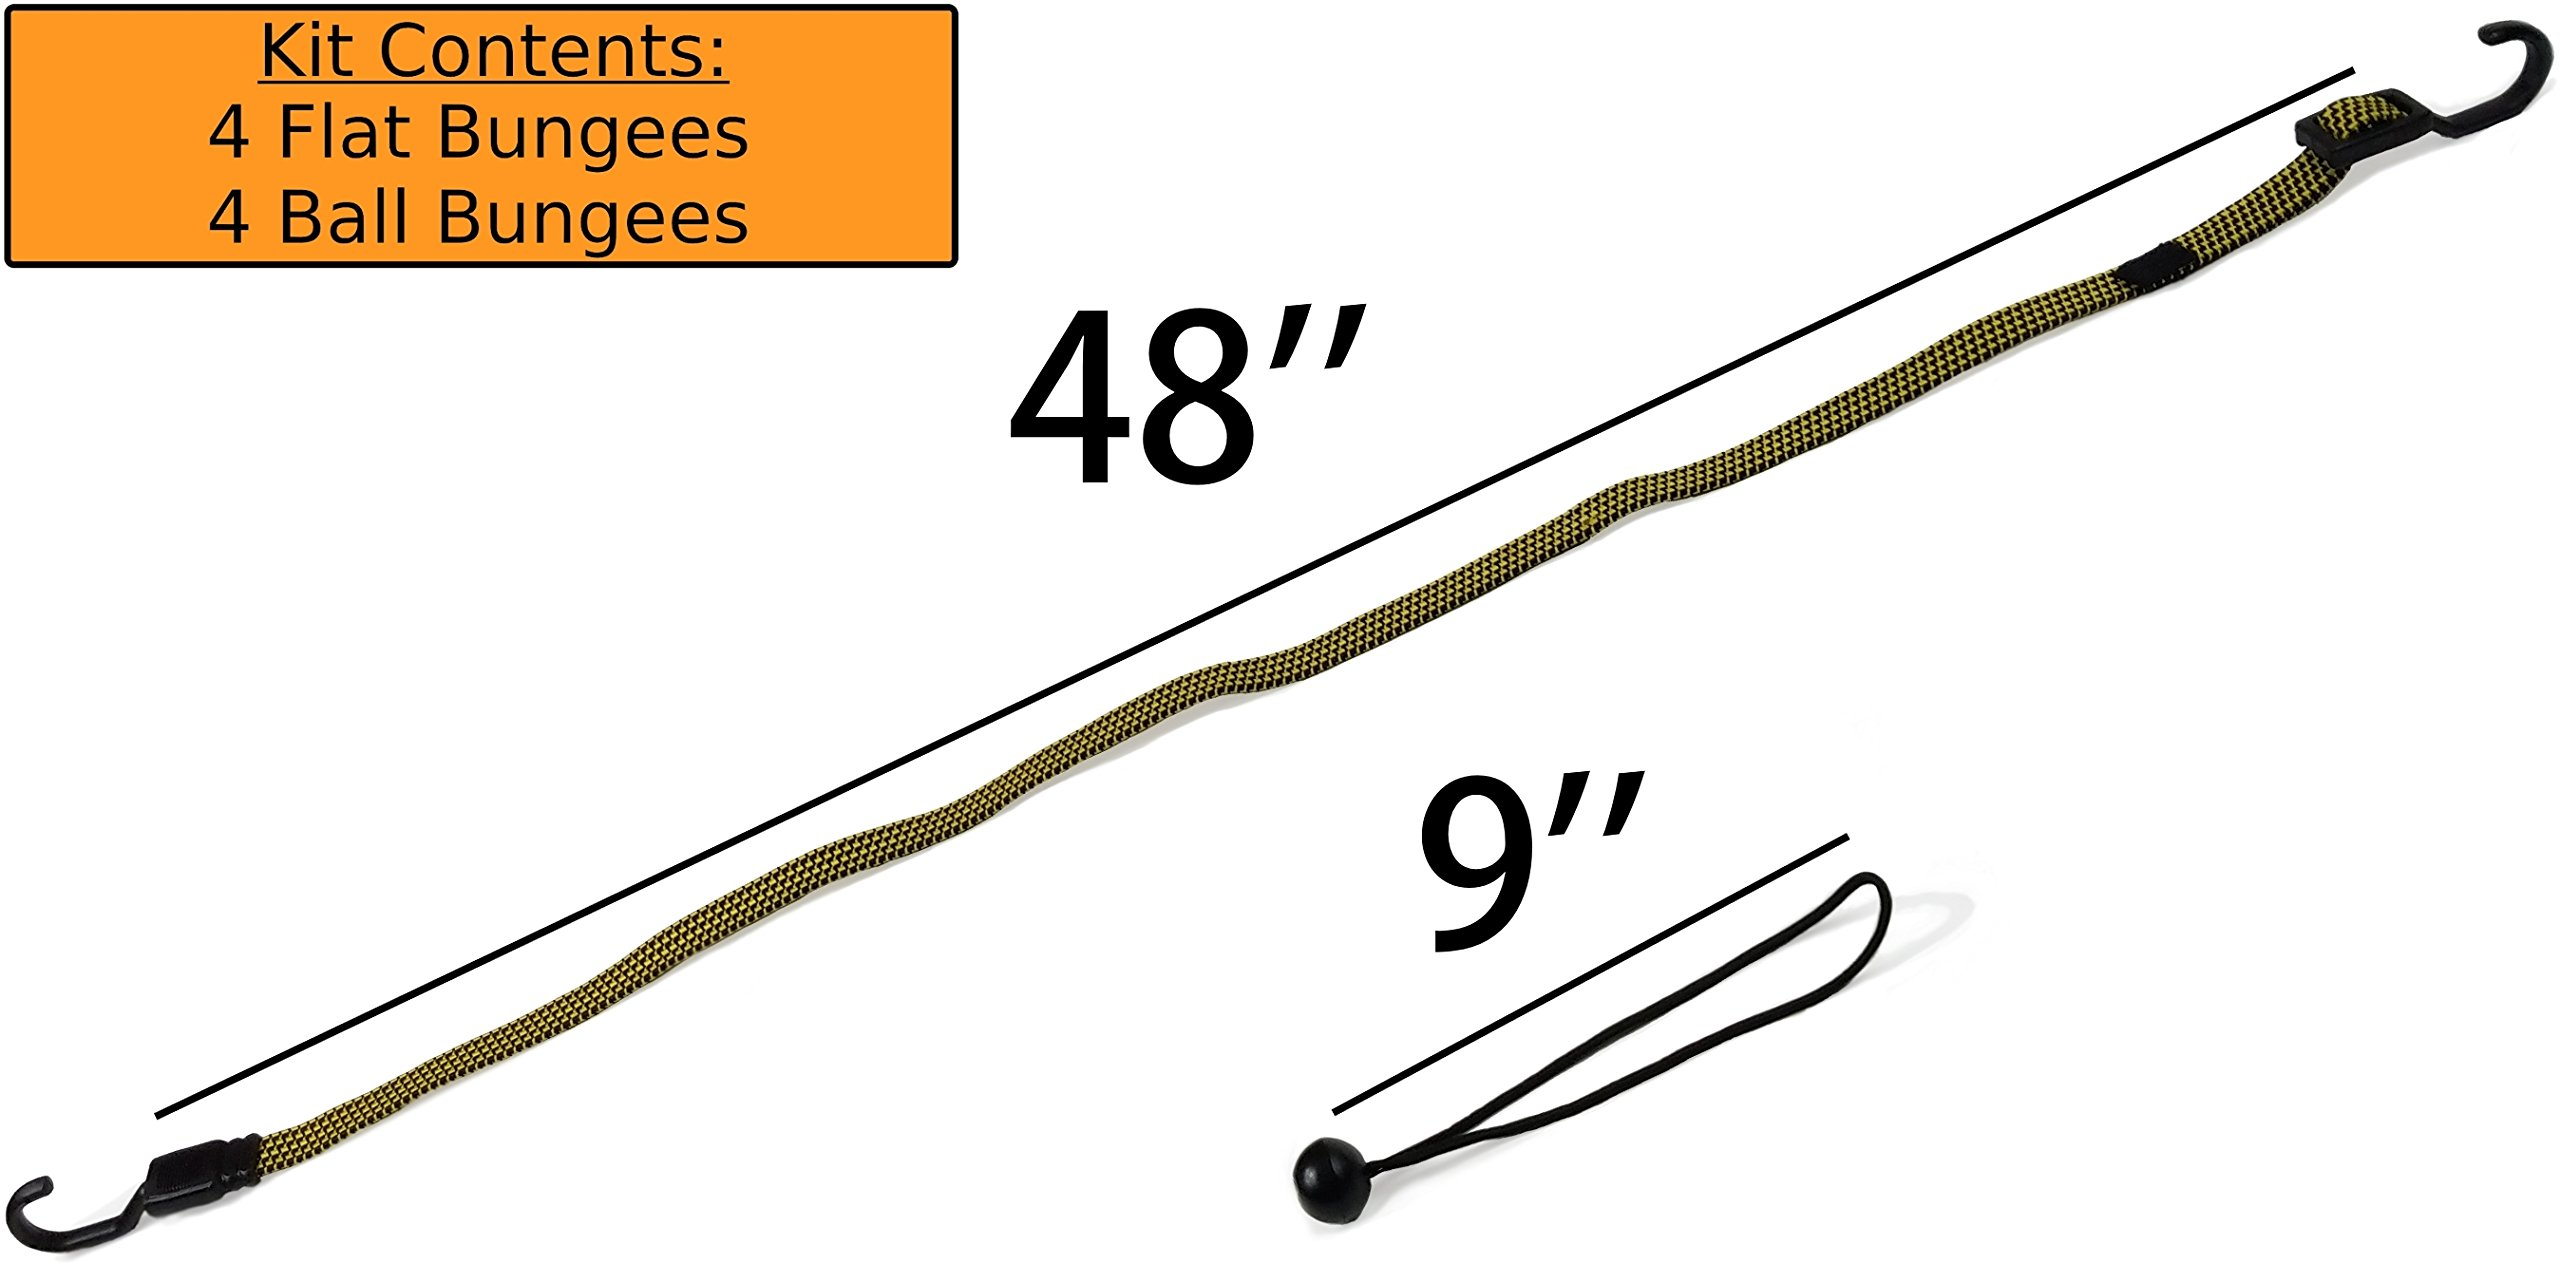 HeavyWeight Flat Bungee Cords 4 PACK with BONUS 4 Ball Bungees | 48'' INCH Total Length with Adjustable Length Hooks | Hand Carts, Dolly, Cargo, Moving, Camping, RV, Trunk, Luggage Rack, Tarp Tie Down by Heavy Weight (Image #4)